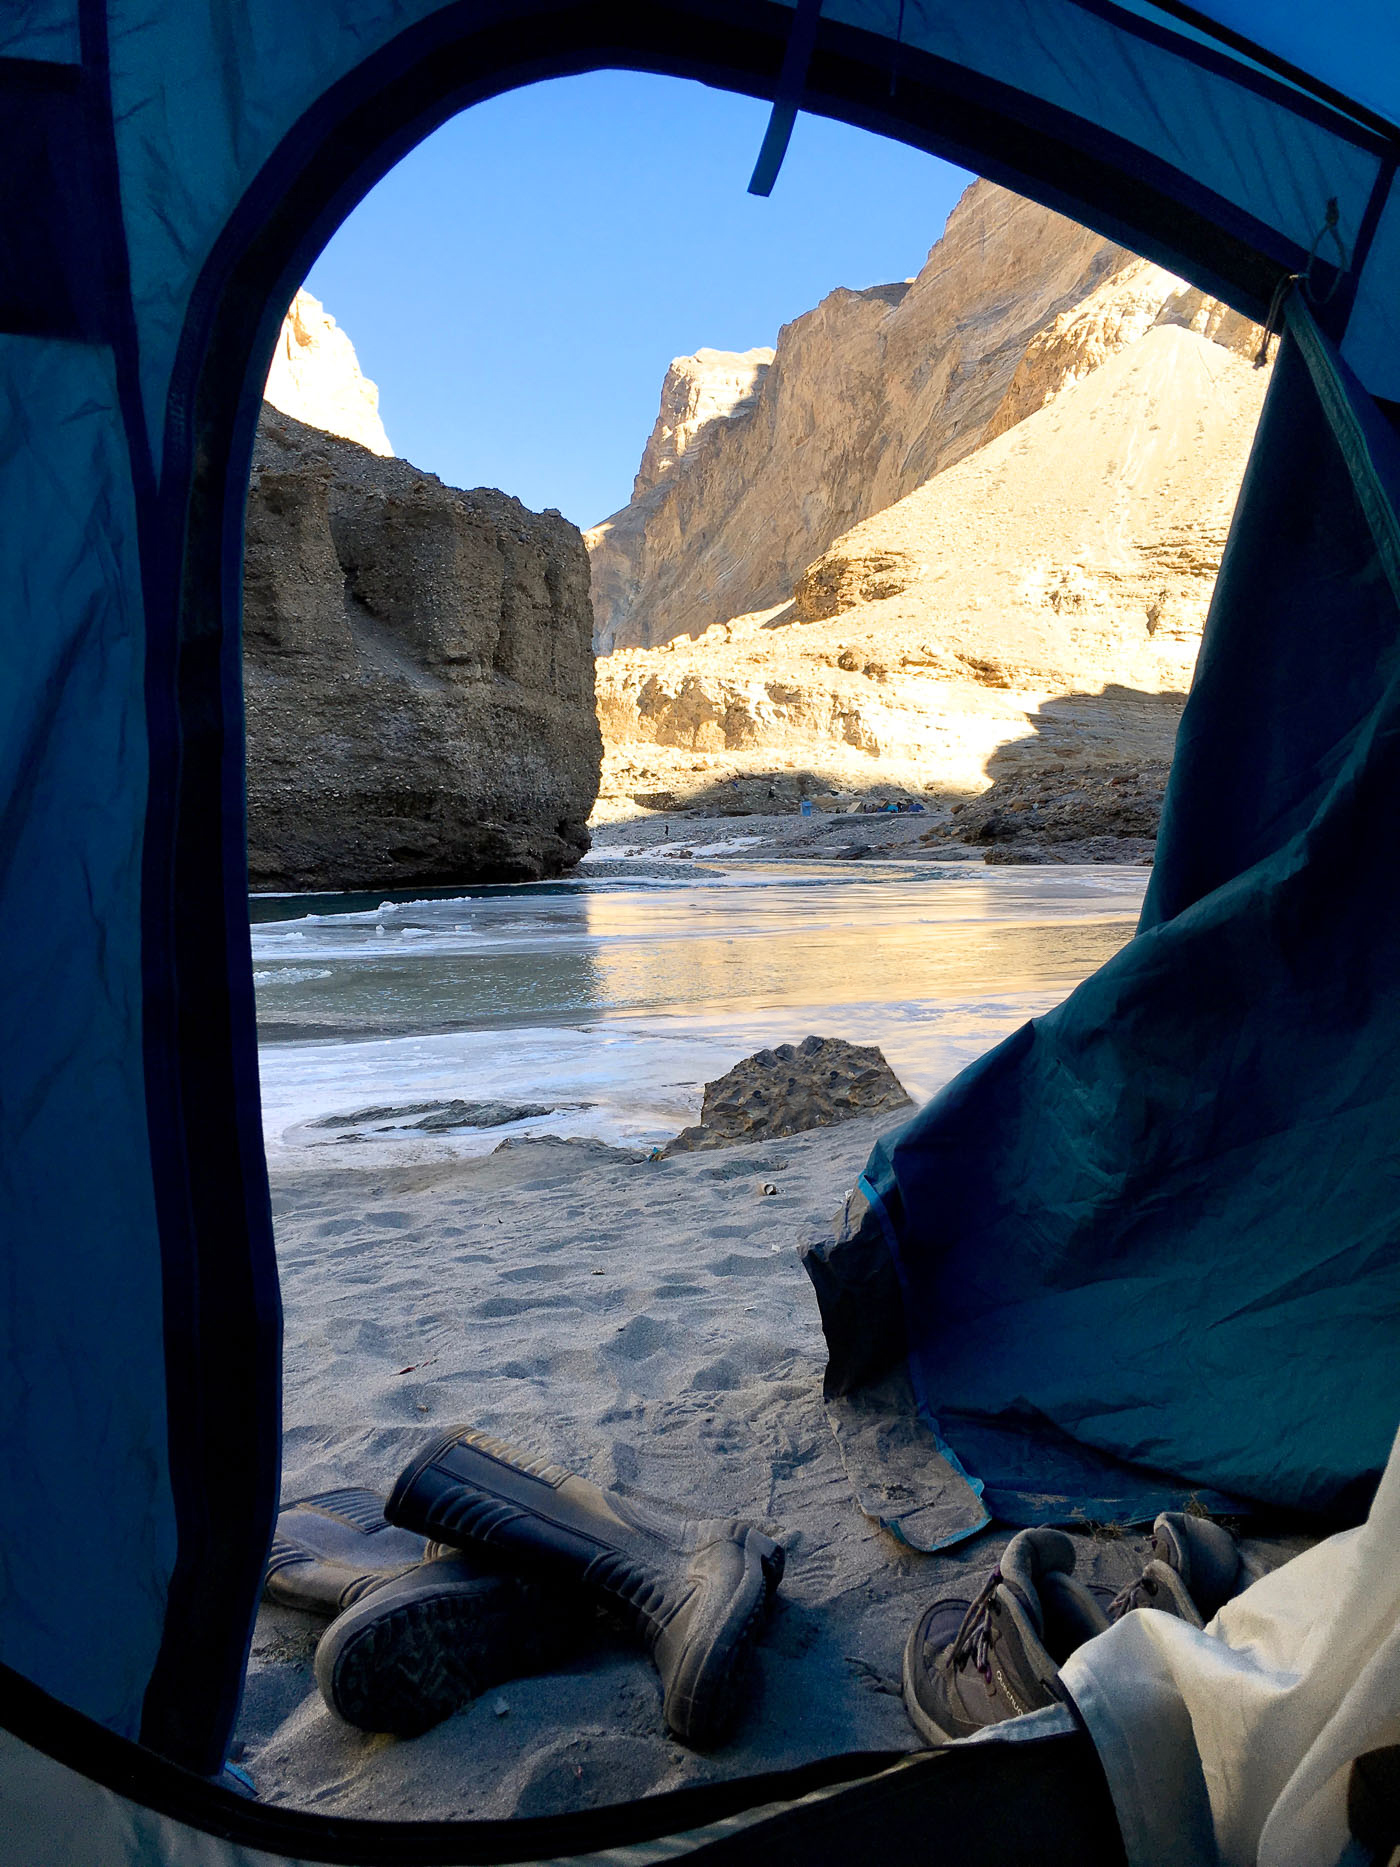 Chadar_Trek_Frozen_River_Leh_Kashmir_India_TheSassyPilgrim_Travel_Blog_Blogger_Solo_Traveller_Traveller_Photos_Indian_Female